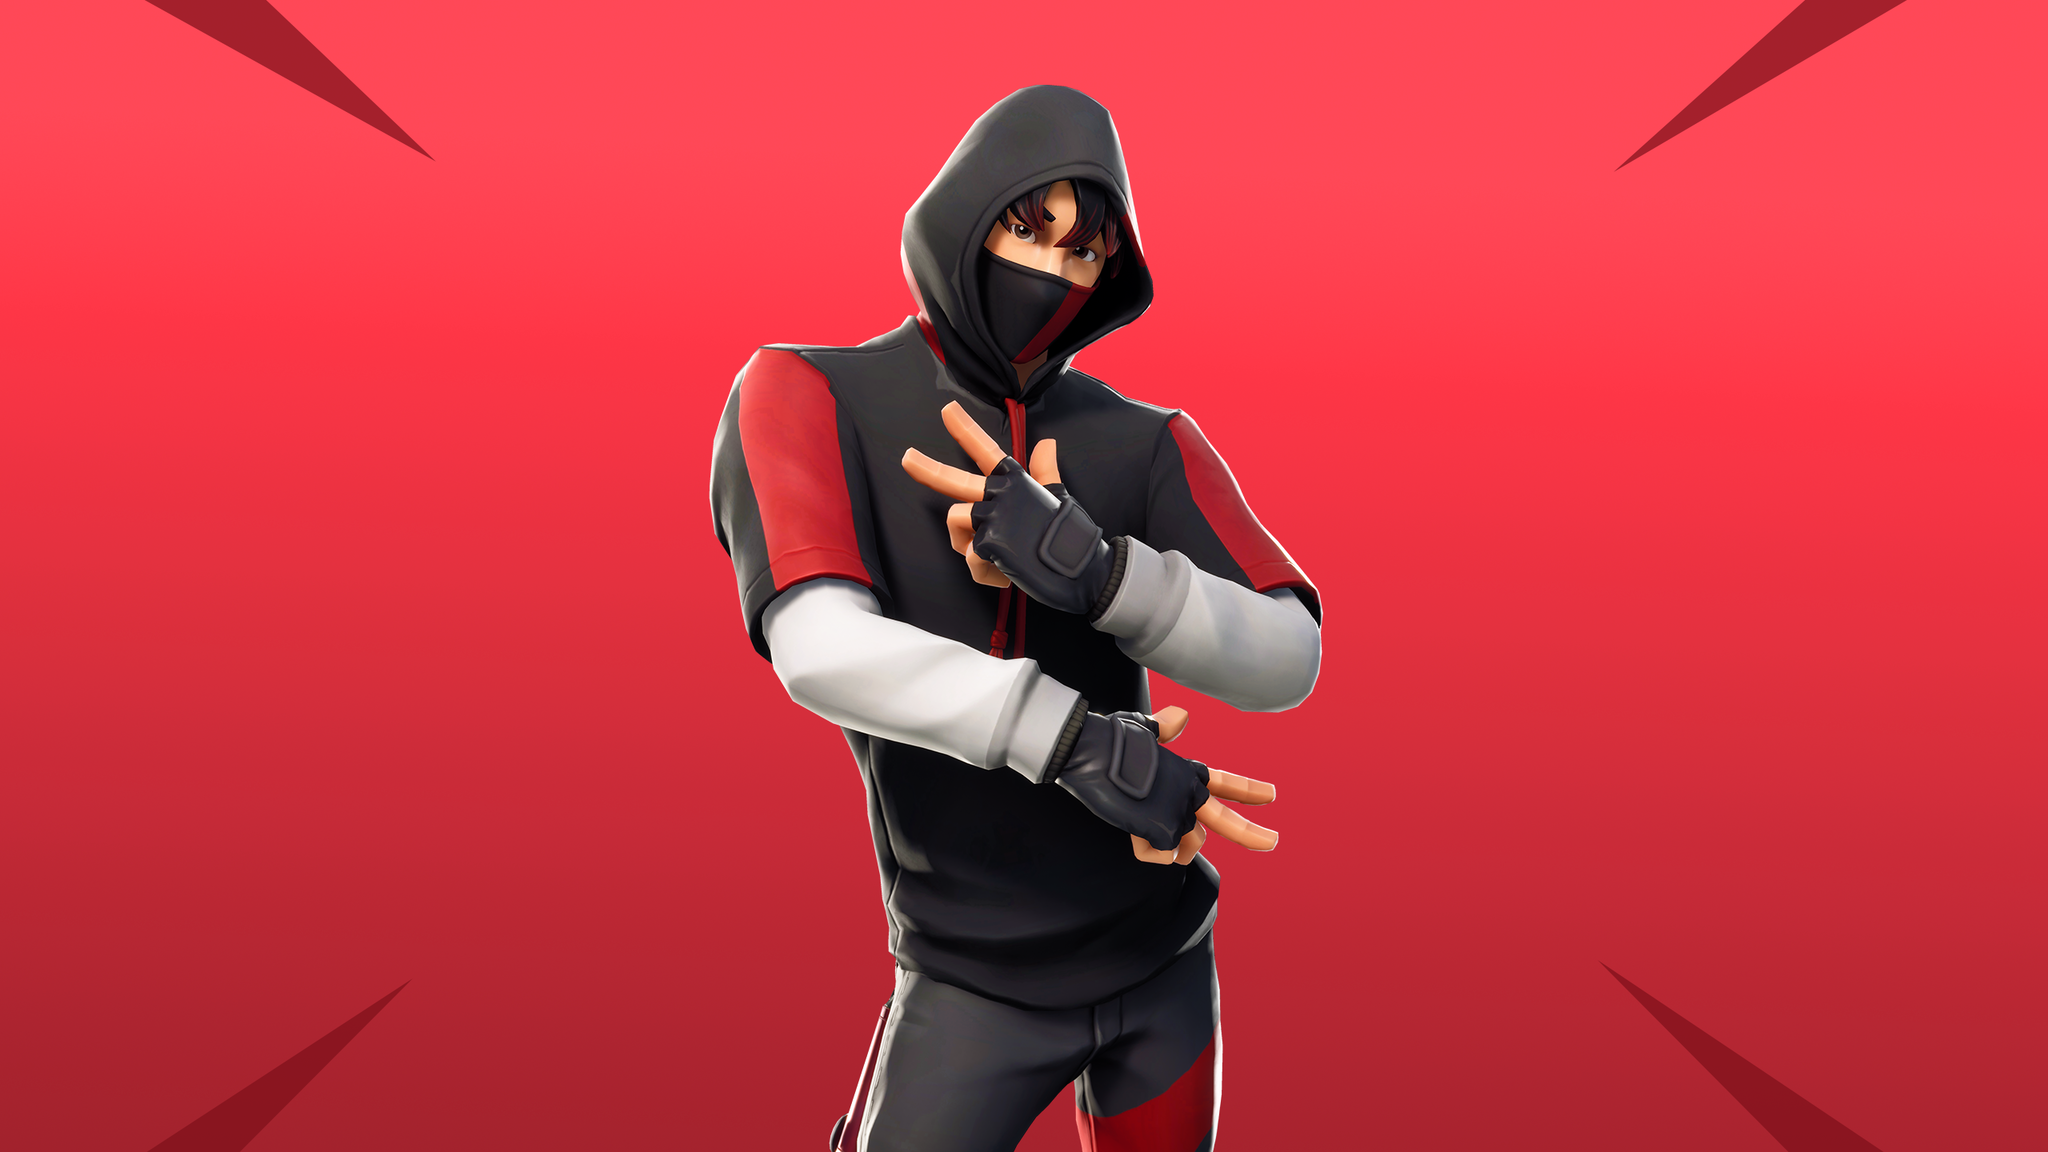 Ikonik Skin Wallpapers Top Free Ikonik Skin Backgrounds Wallpaperaccess